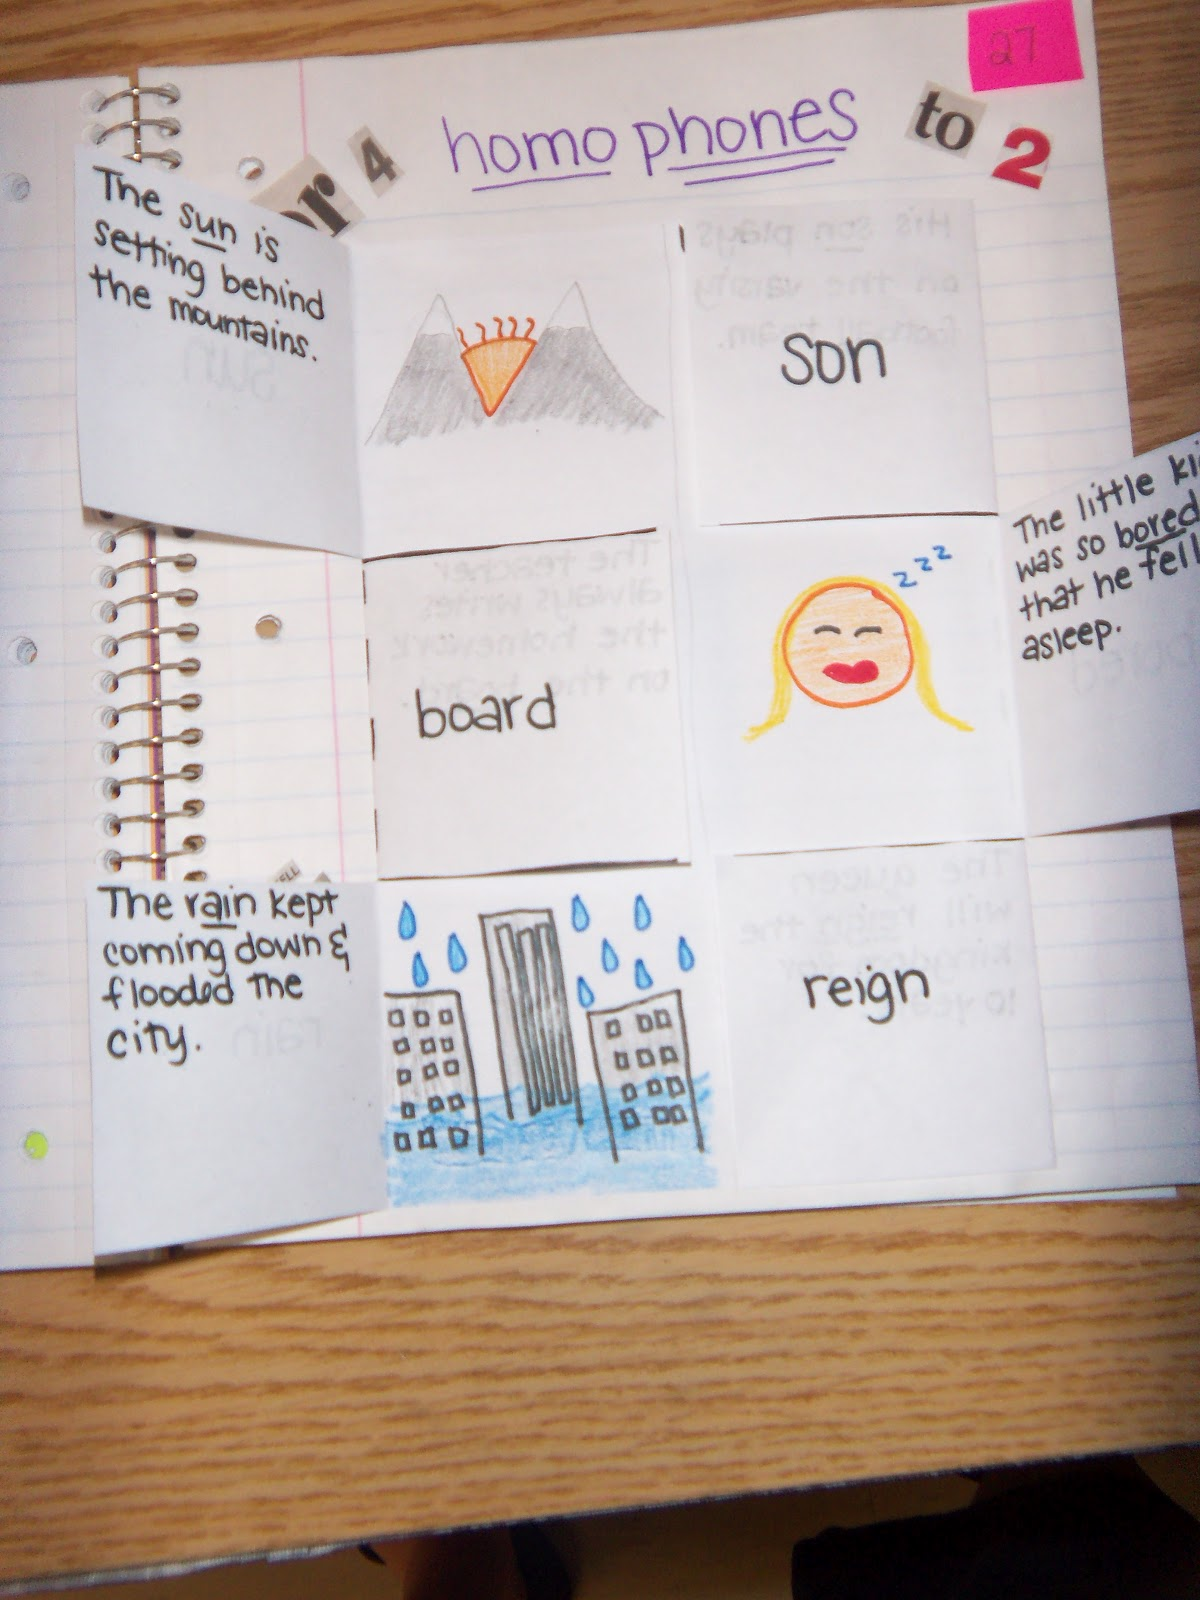 Homophone Worksheet Pinterest